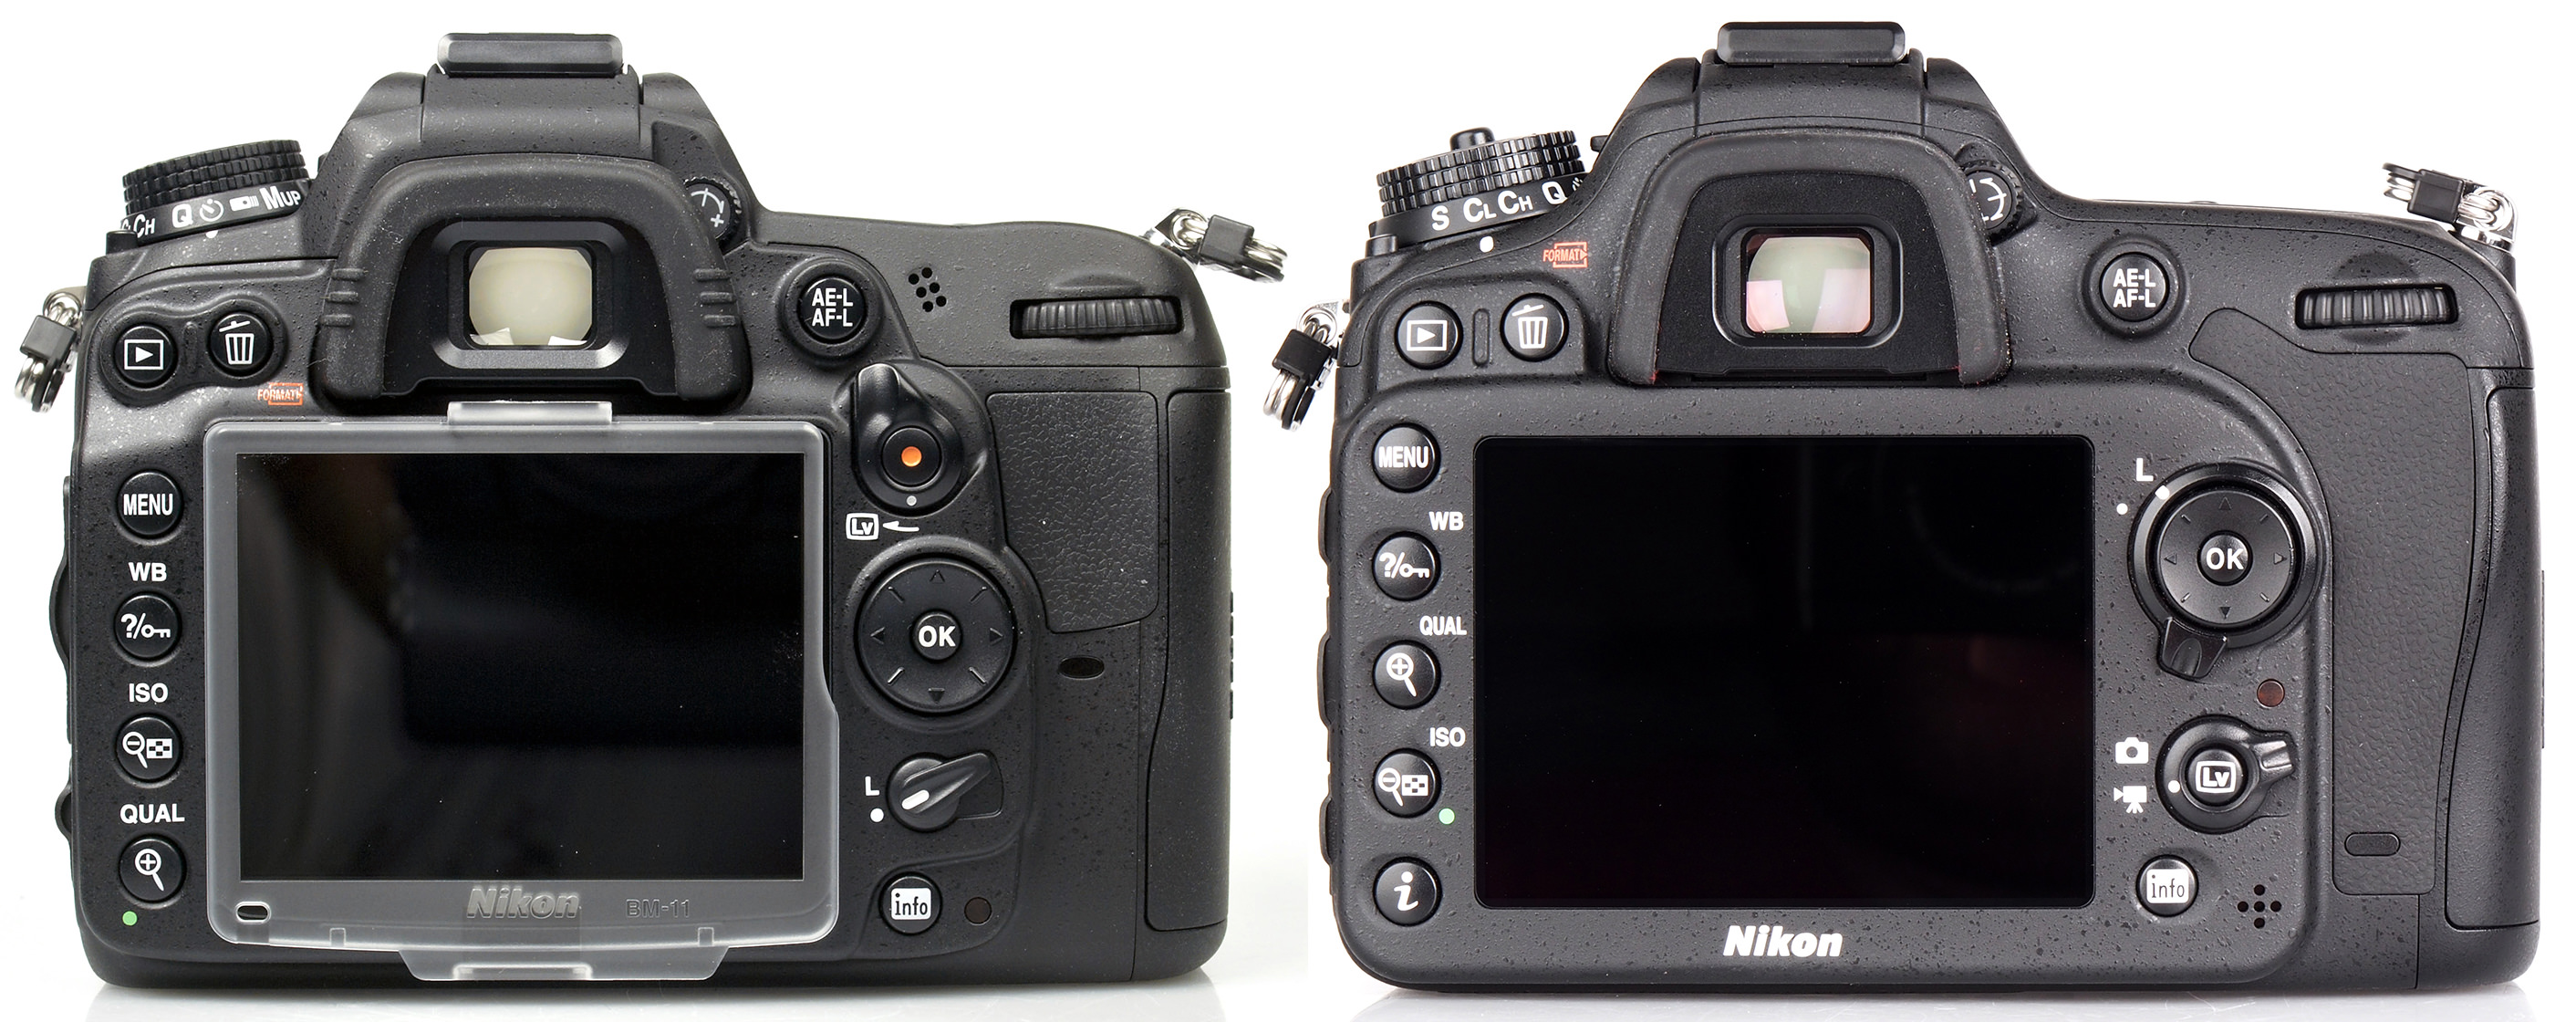 Nikon D7100 Vs D7000 Dslr Comparison Review Ephotozine